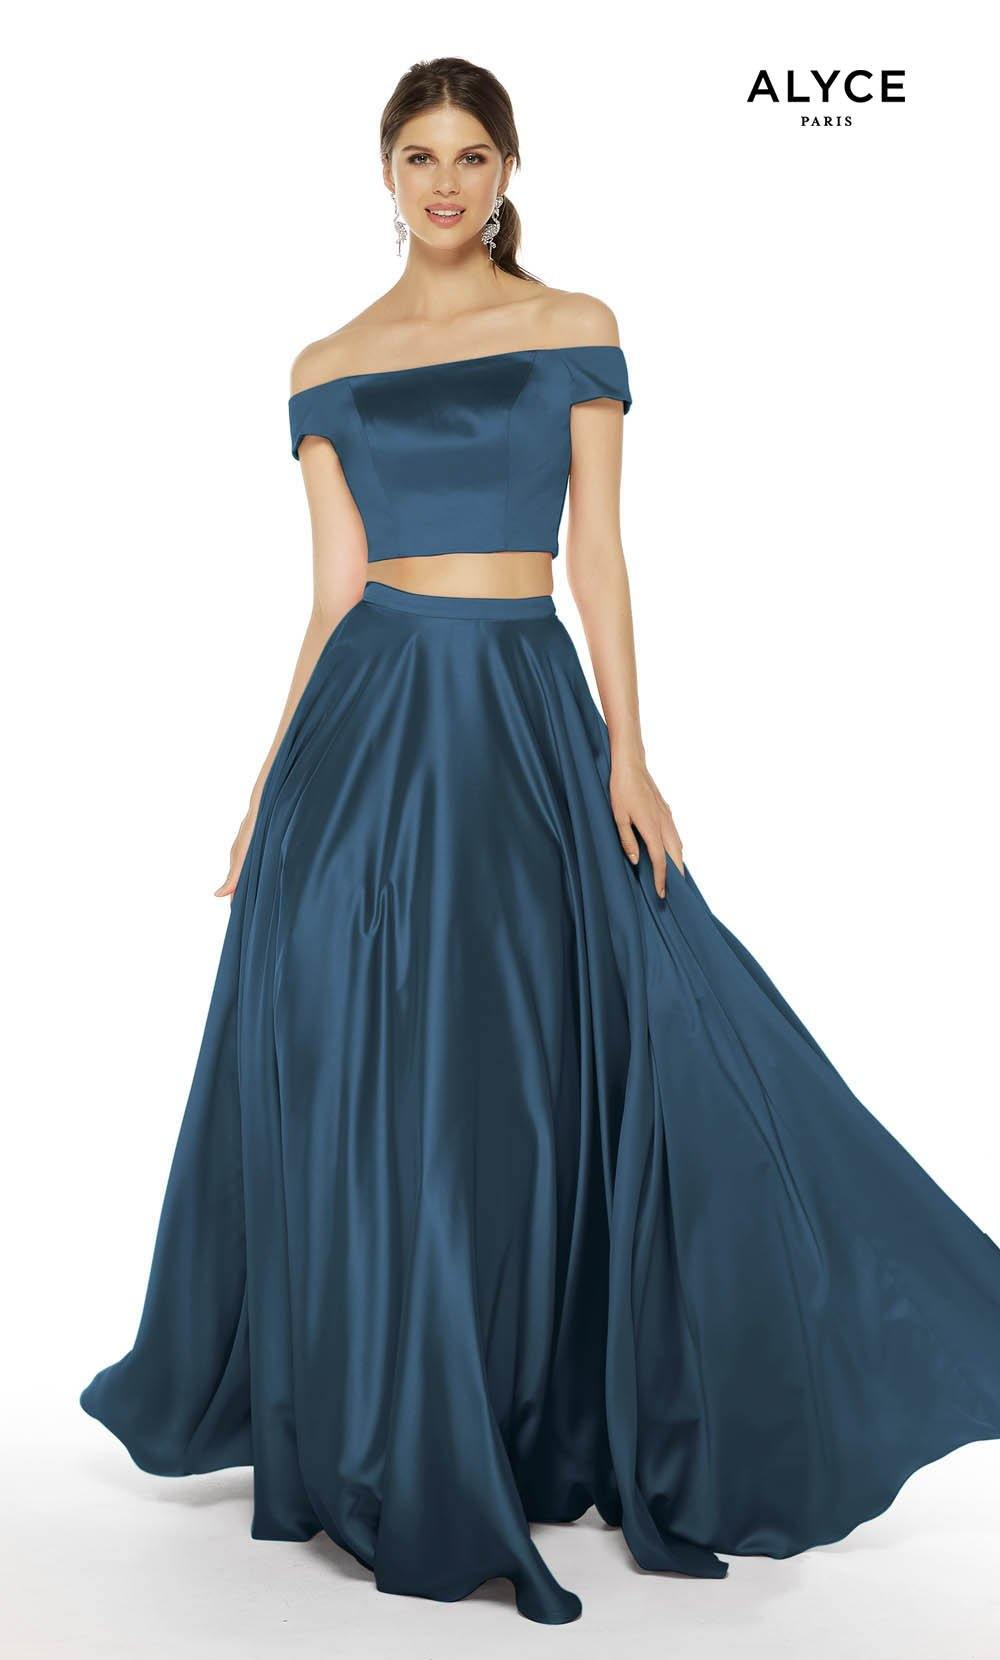 Peacock satin off the shoulder two piece prom dress